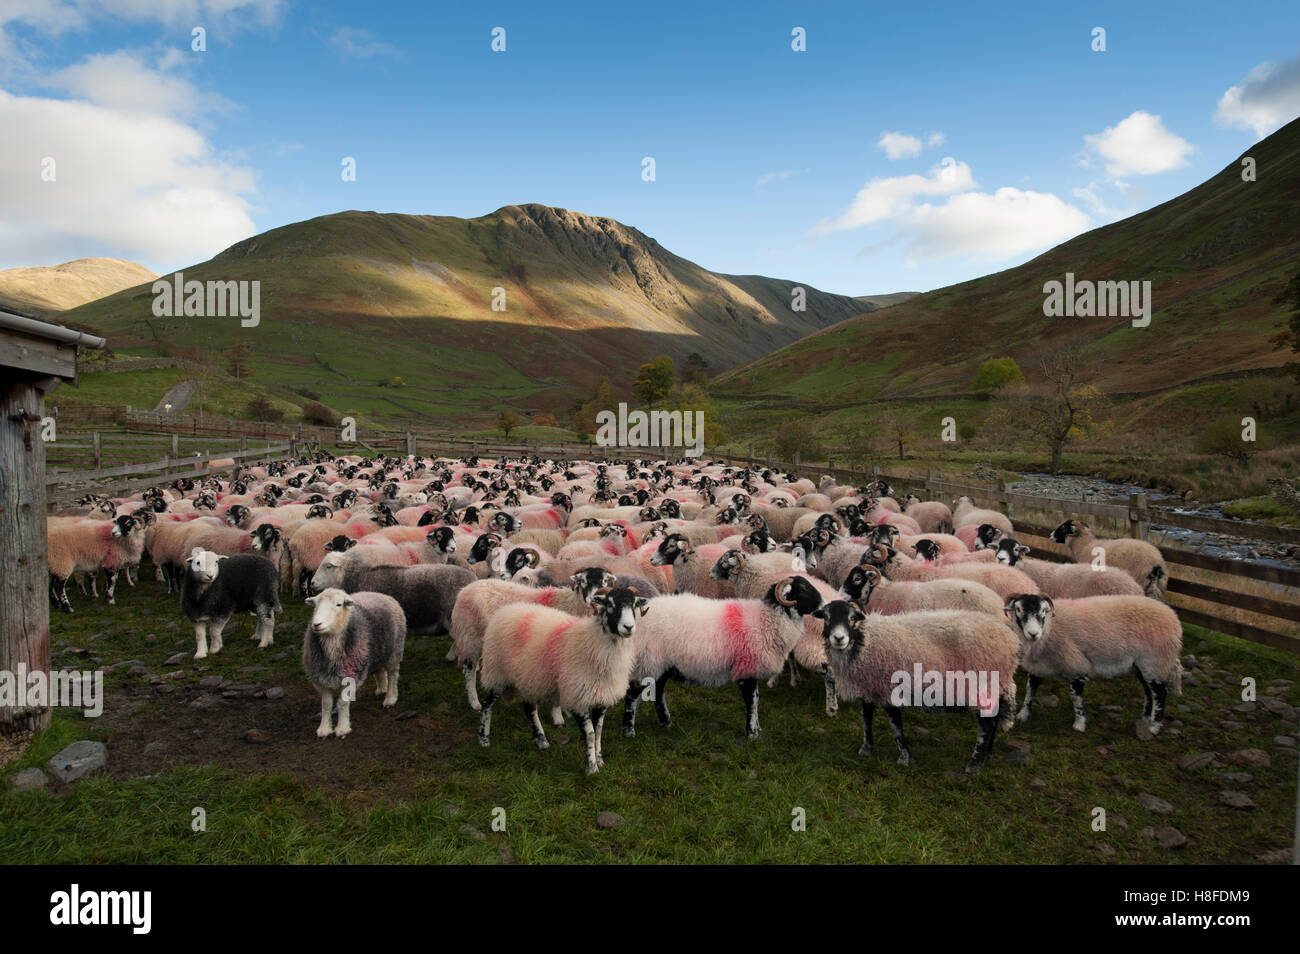 Sheep in a sheep pen, gathered of mountains in Lake District, Cumbria, UK. - Stock Image